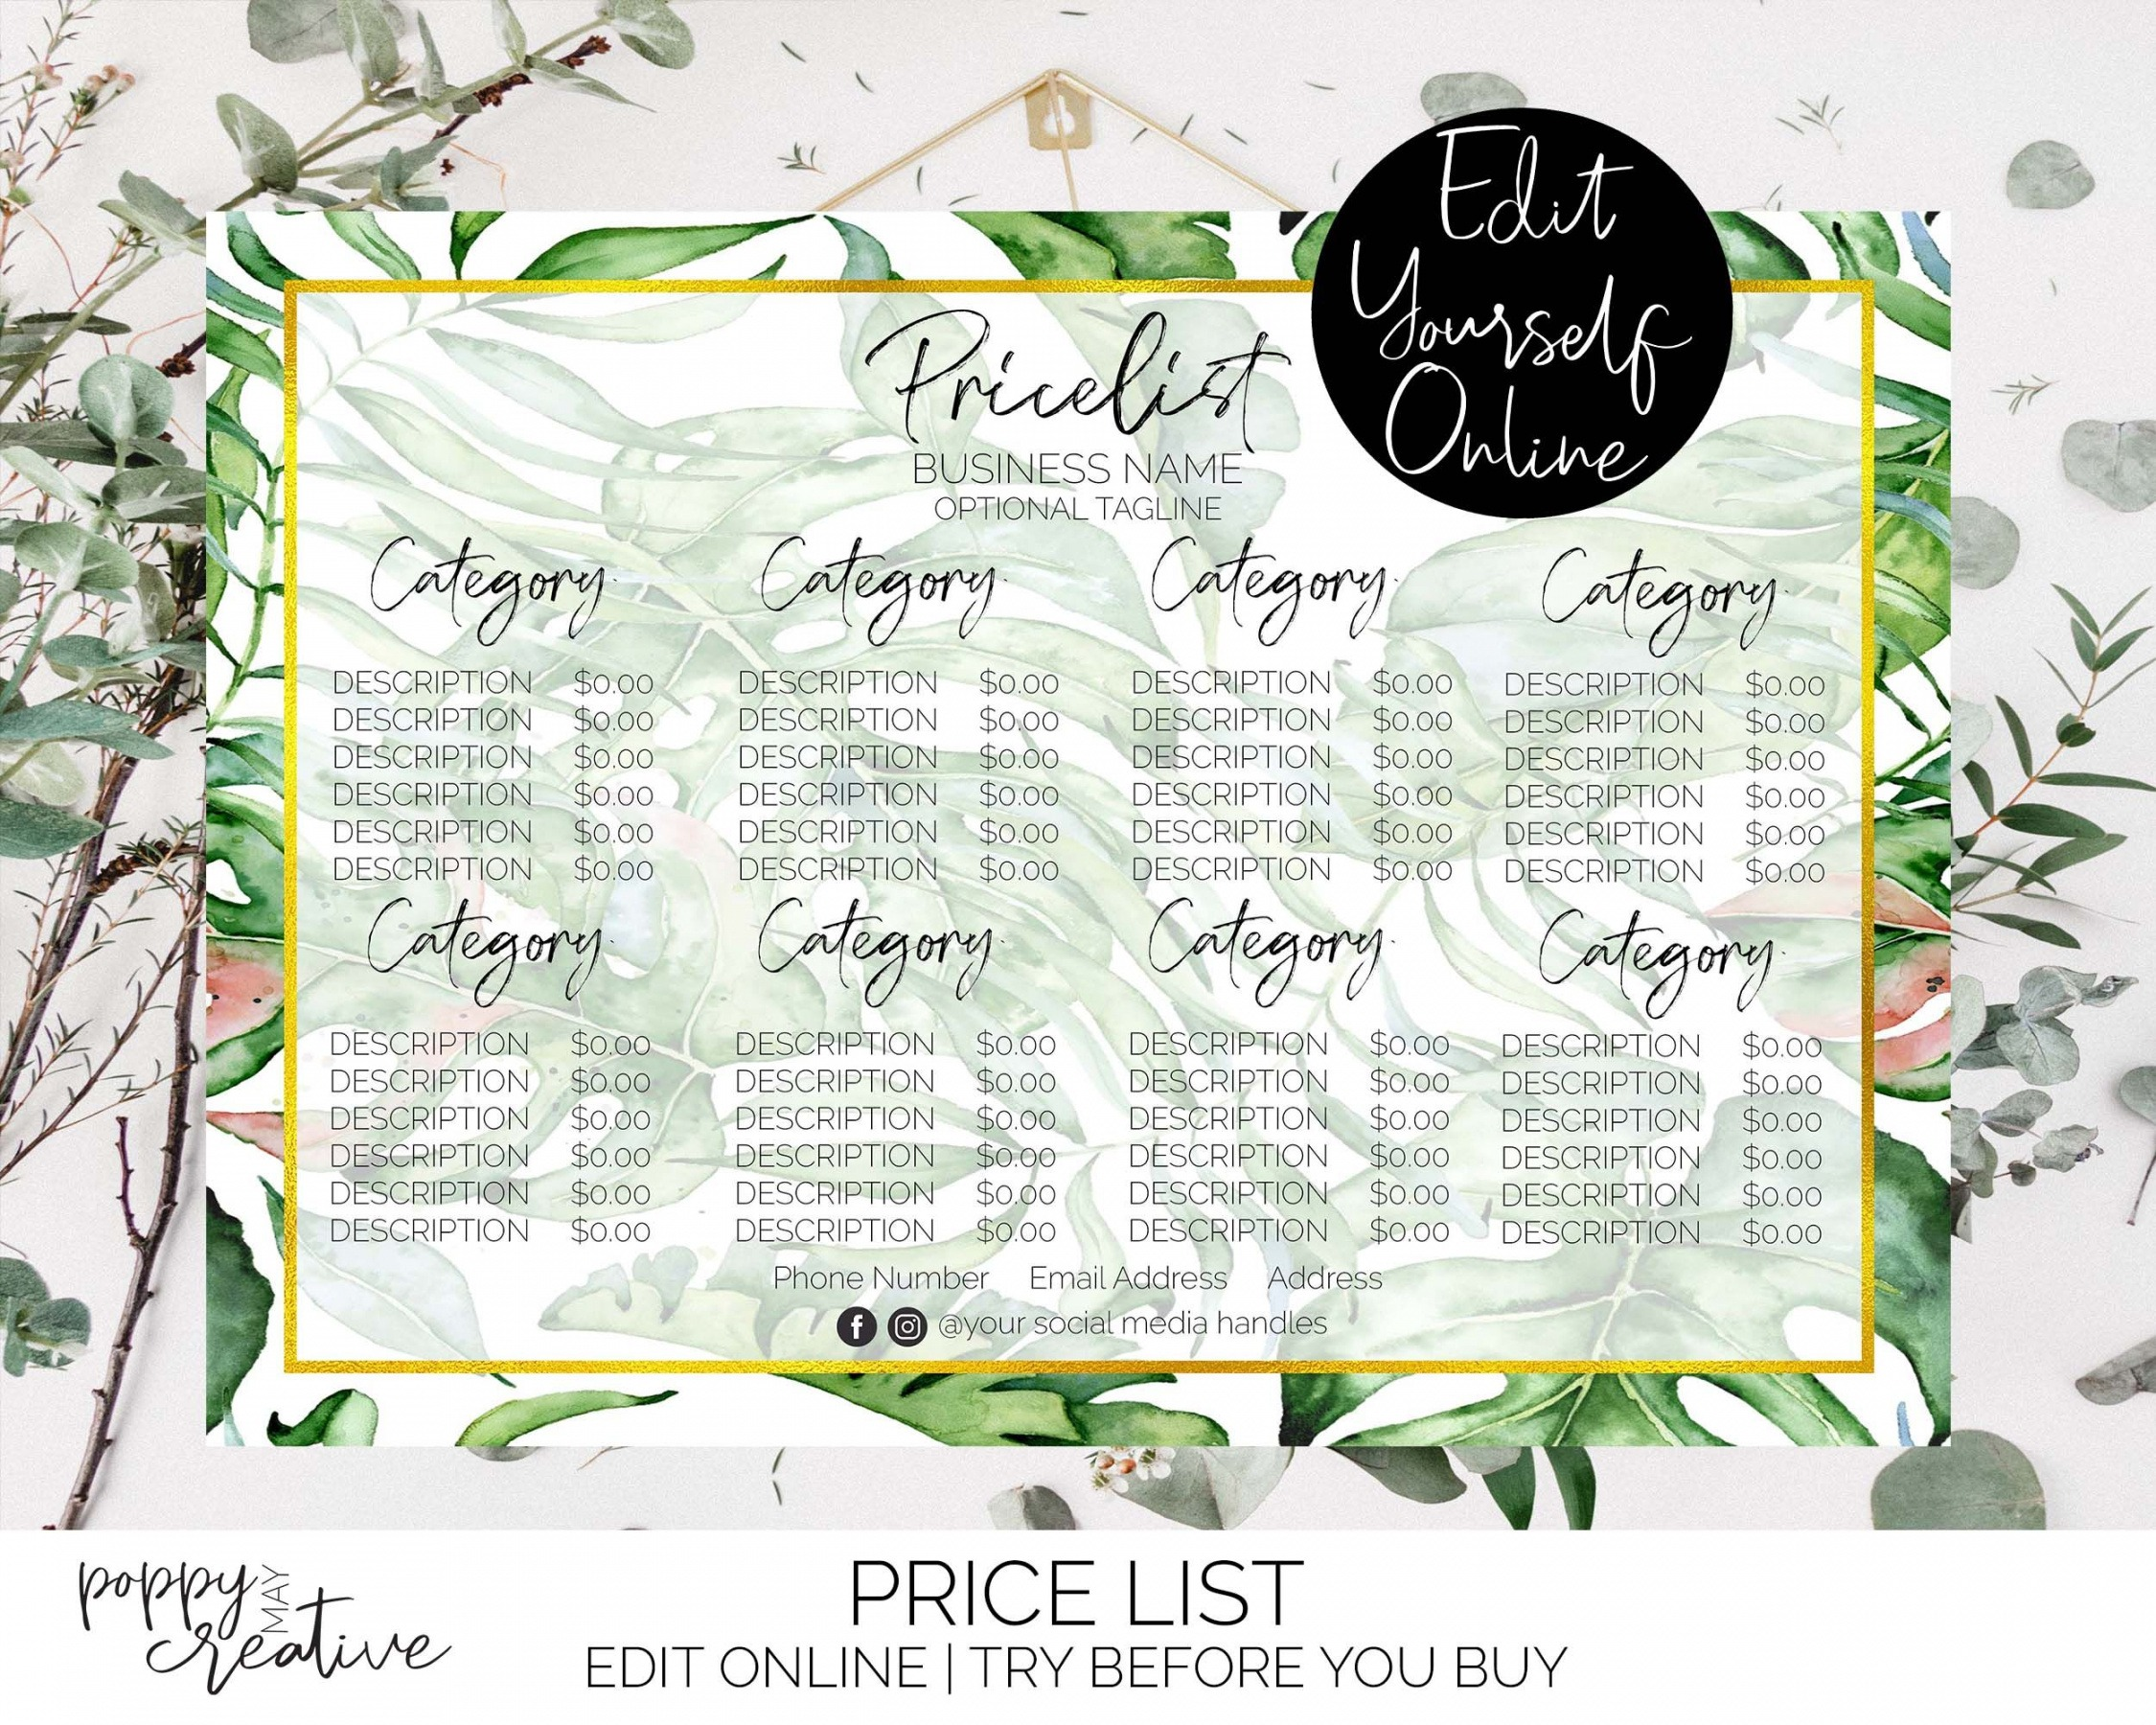 Hairdresser Price List Template Pdf Example